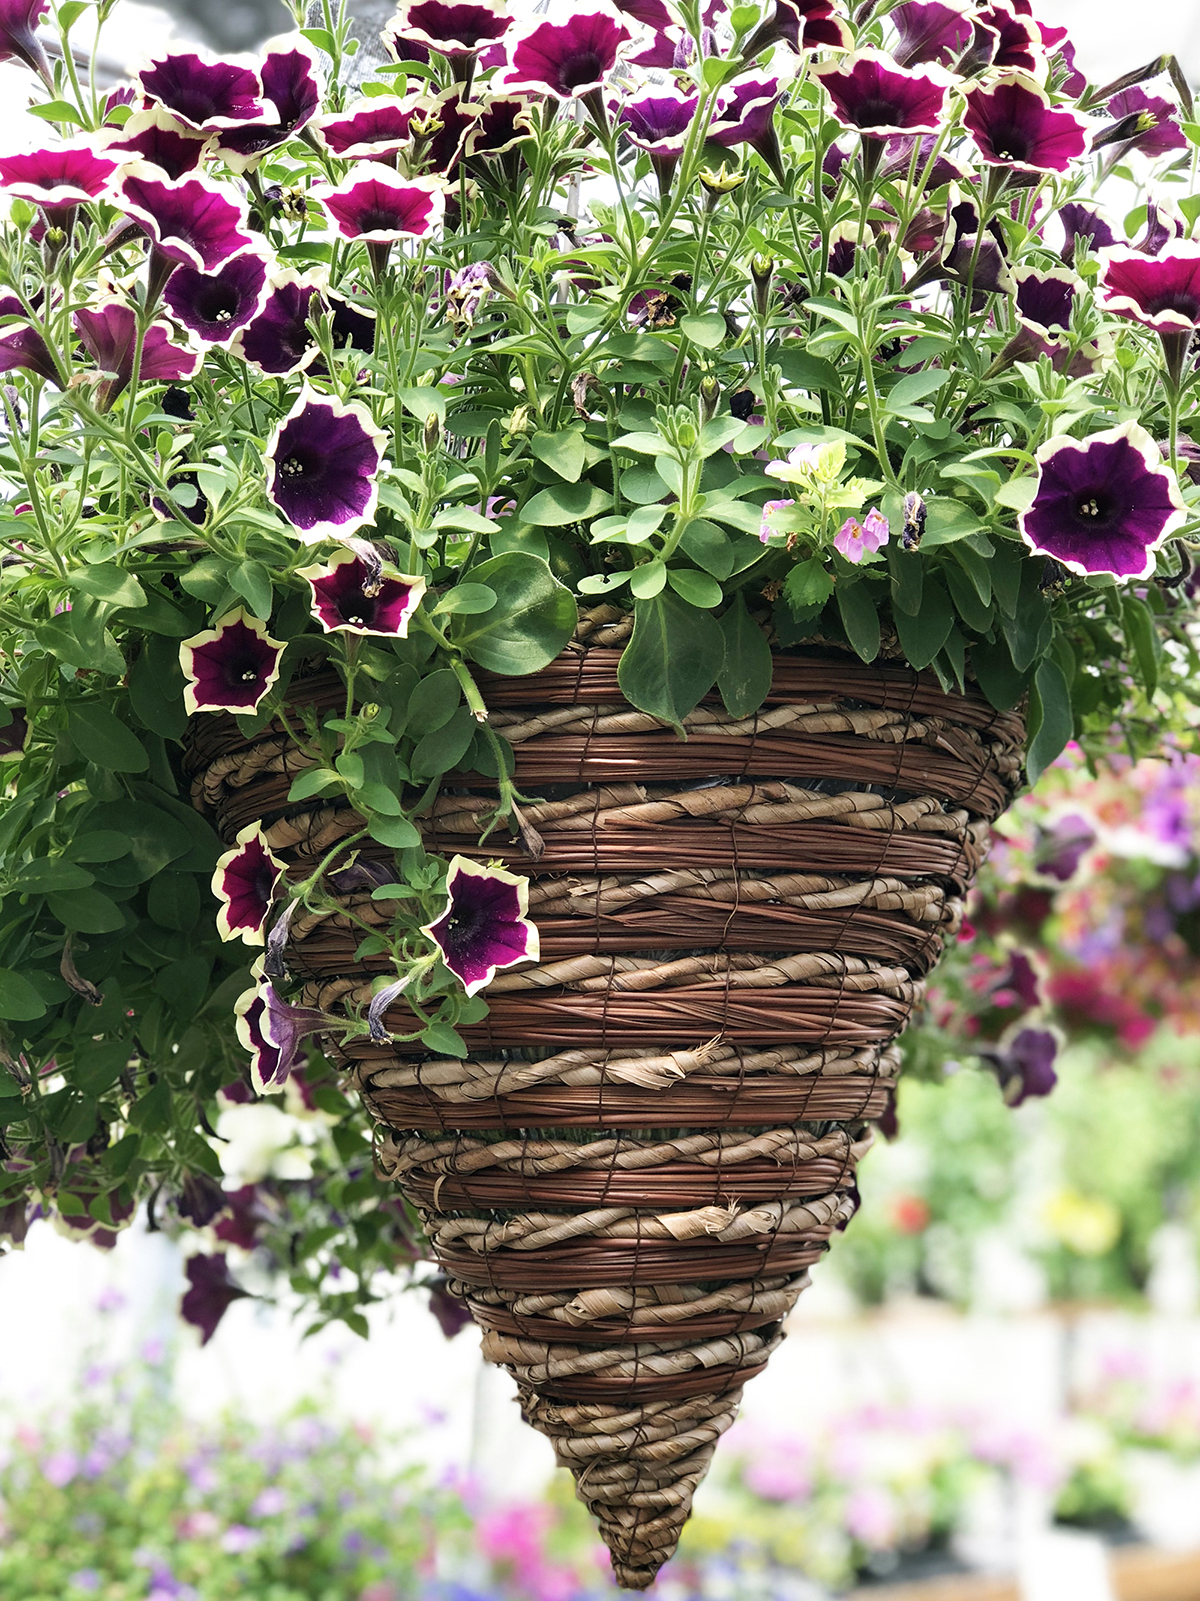 Conical Basket_2